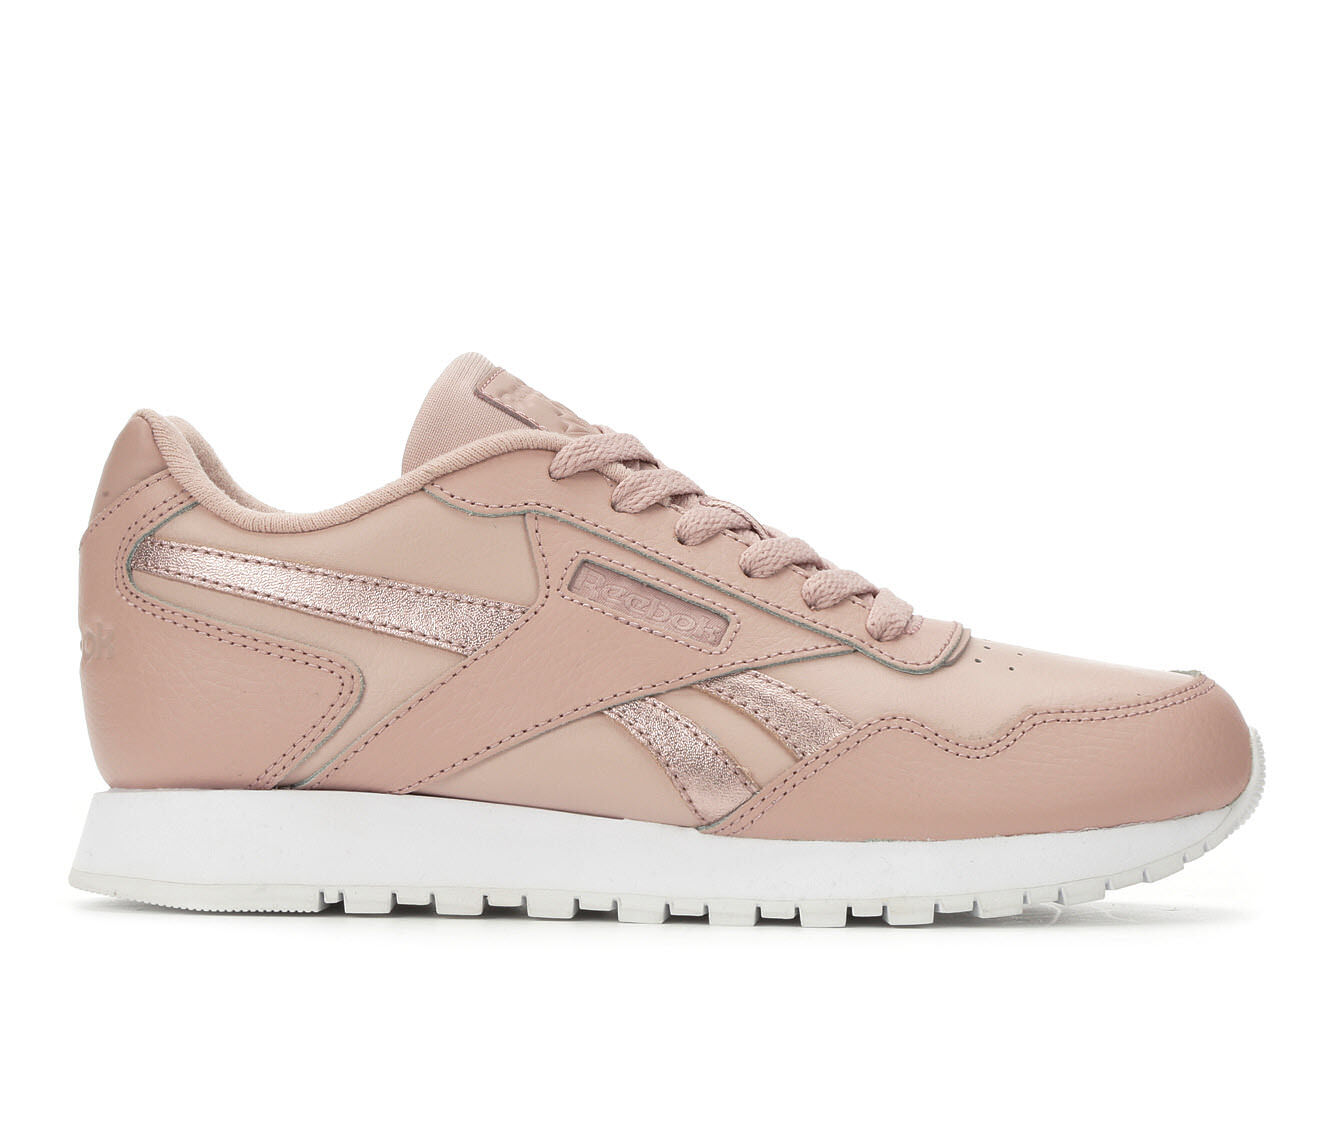 new arrivals Women's Reebok Classic Harman Run Retro Sneakers Pink/Rose/White